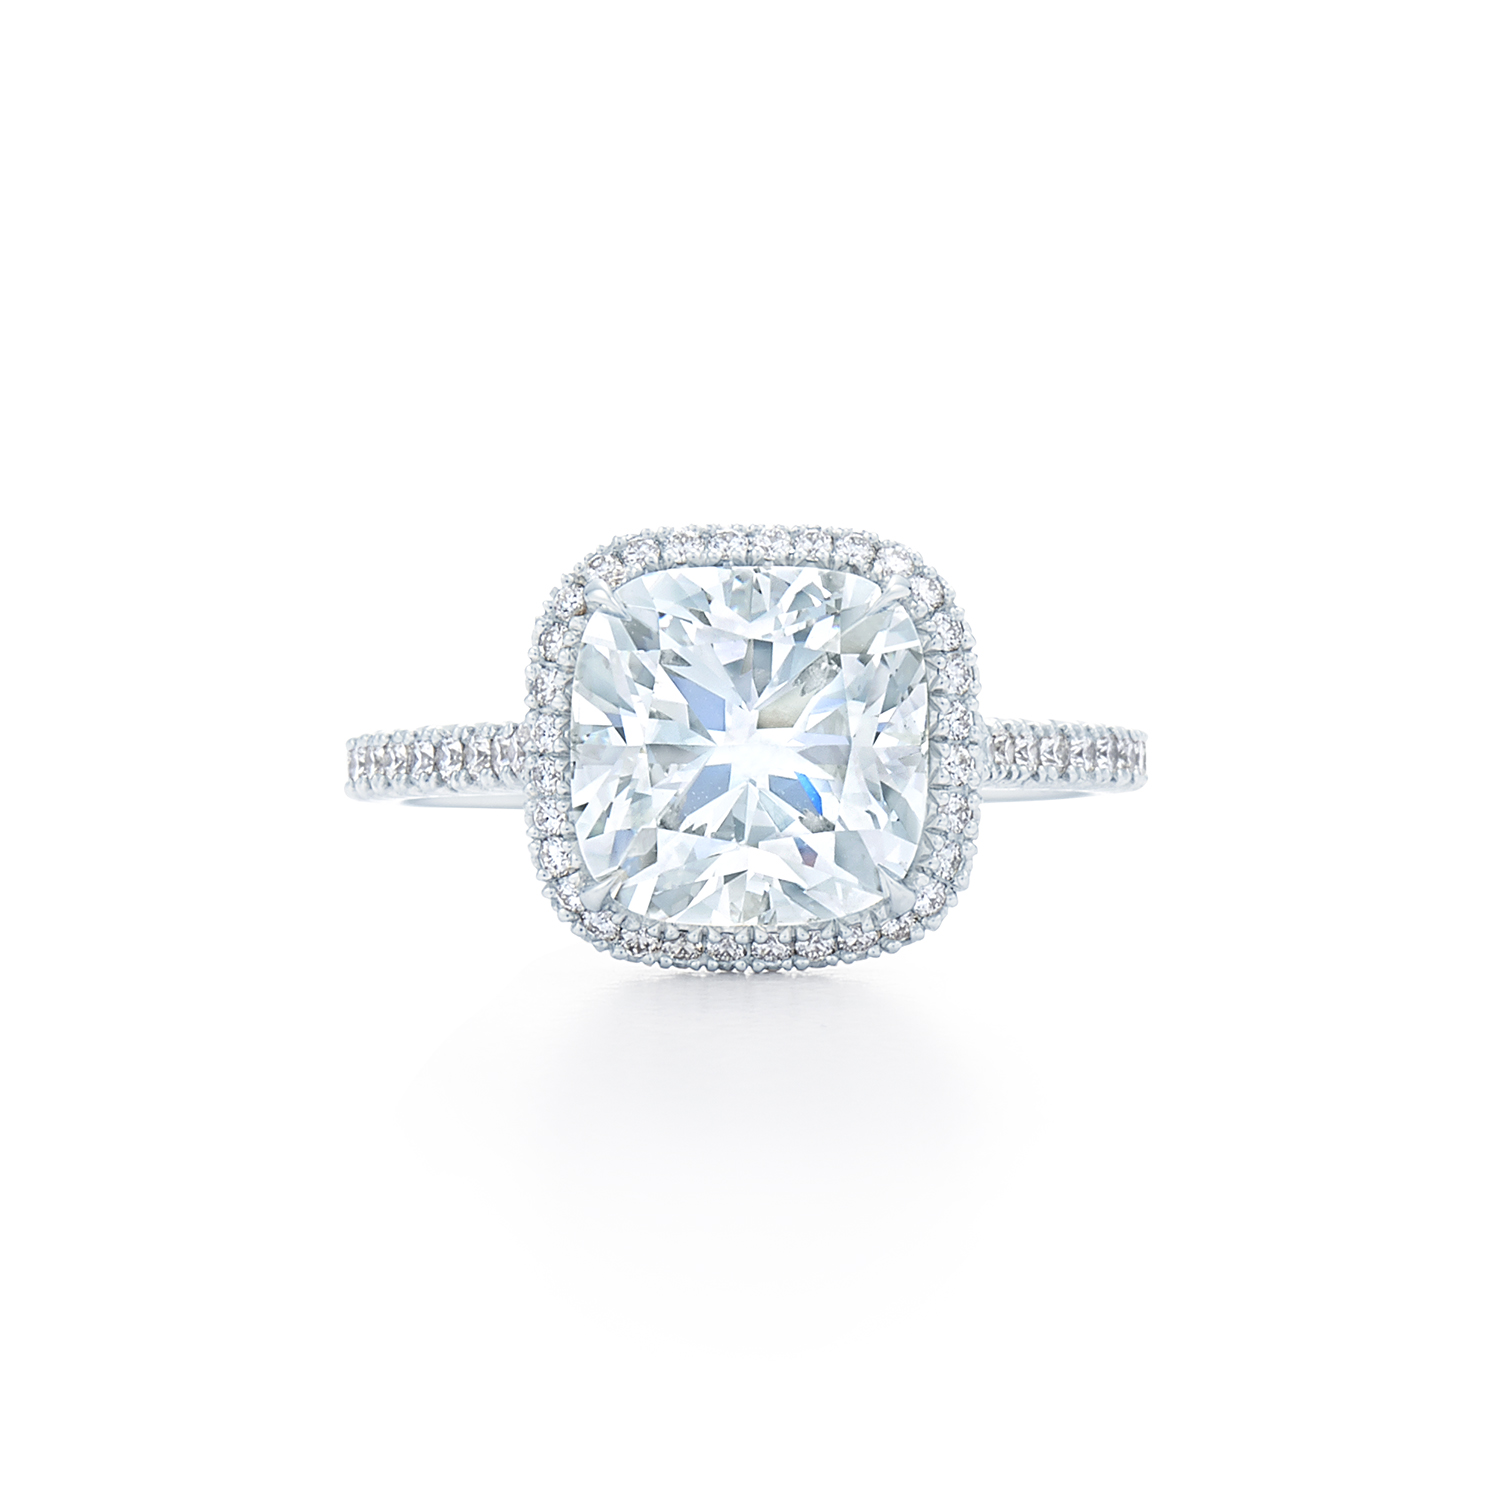 Cushion Diamond Ring In Pave Diamond Halo Set In Platinum